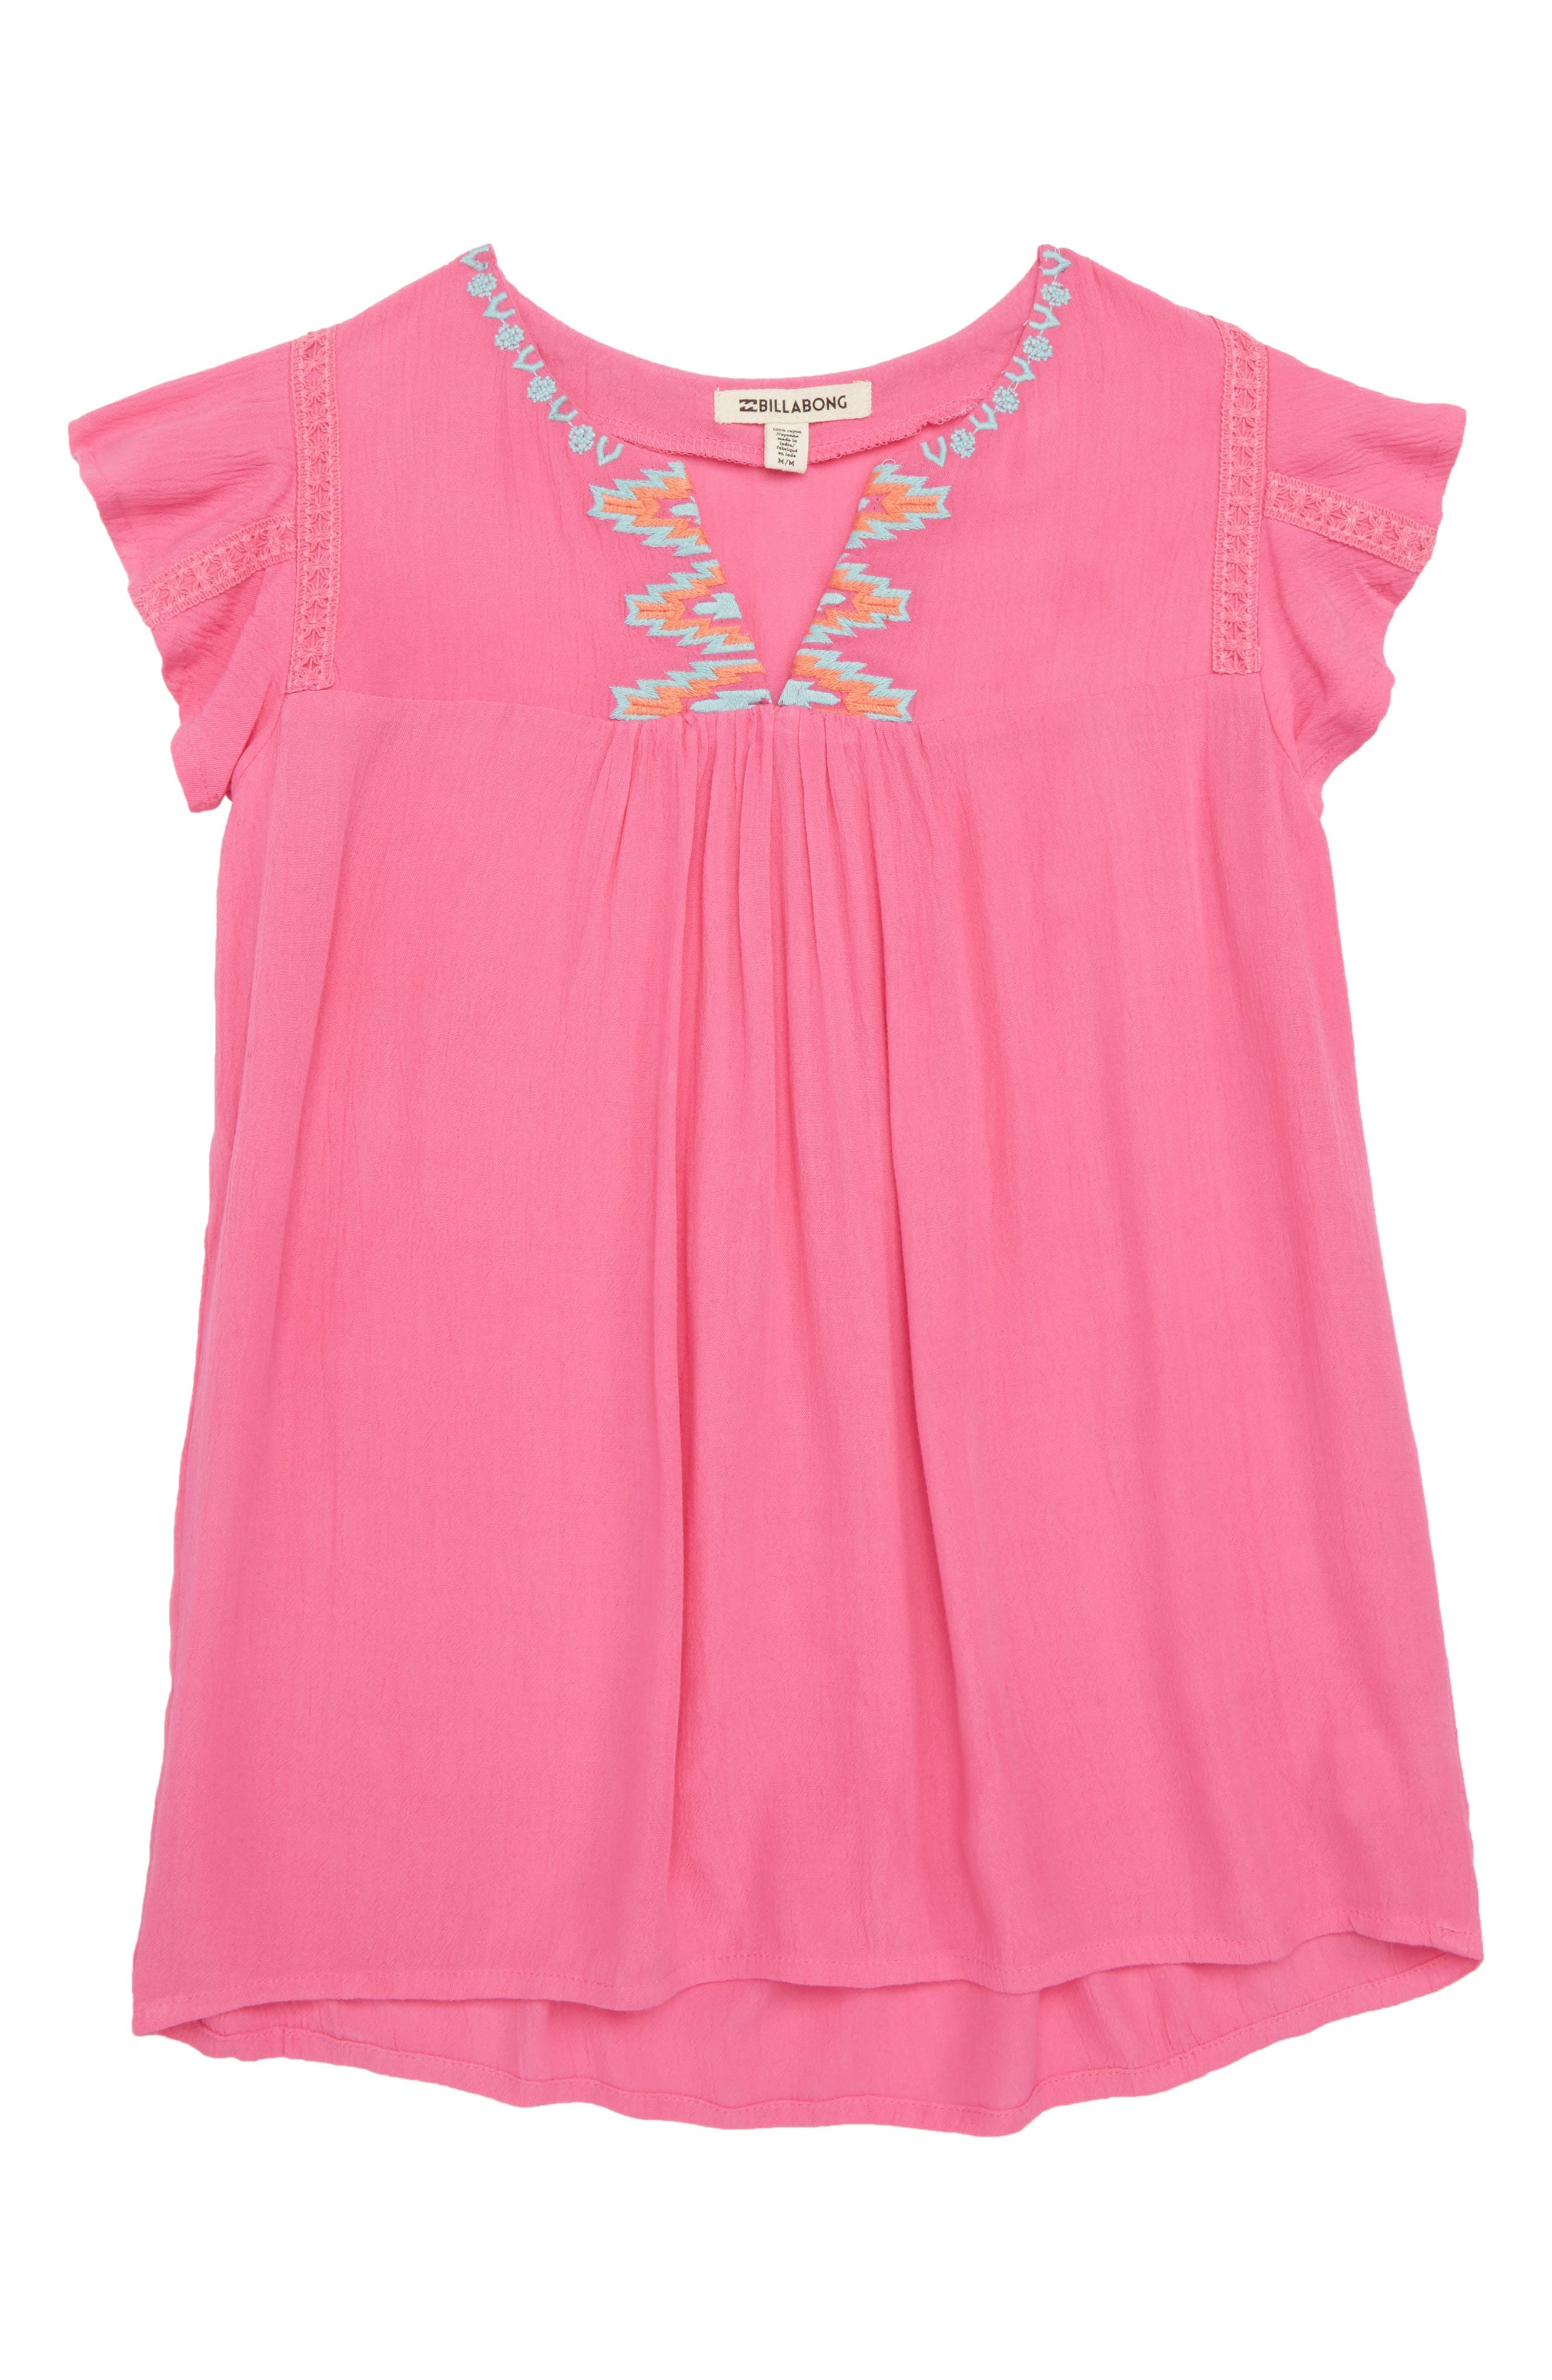 All In A Day Tunic,                         Main,                         color, 655